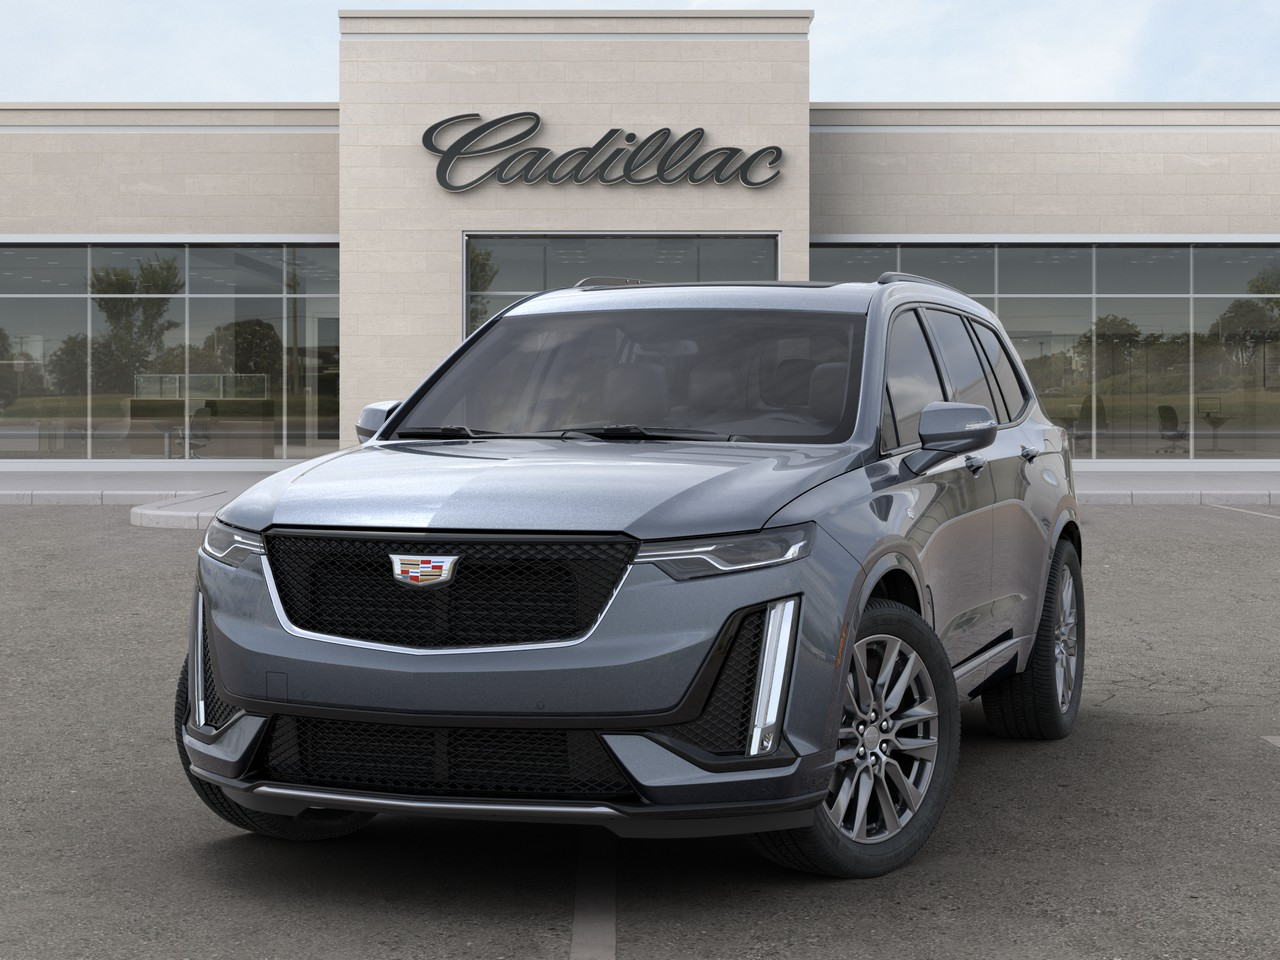 New 2020 Cadillac Xt6 For Sale At Suburban Cadillac Of Plymouth Vin 1gykpgrs0lz207998